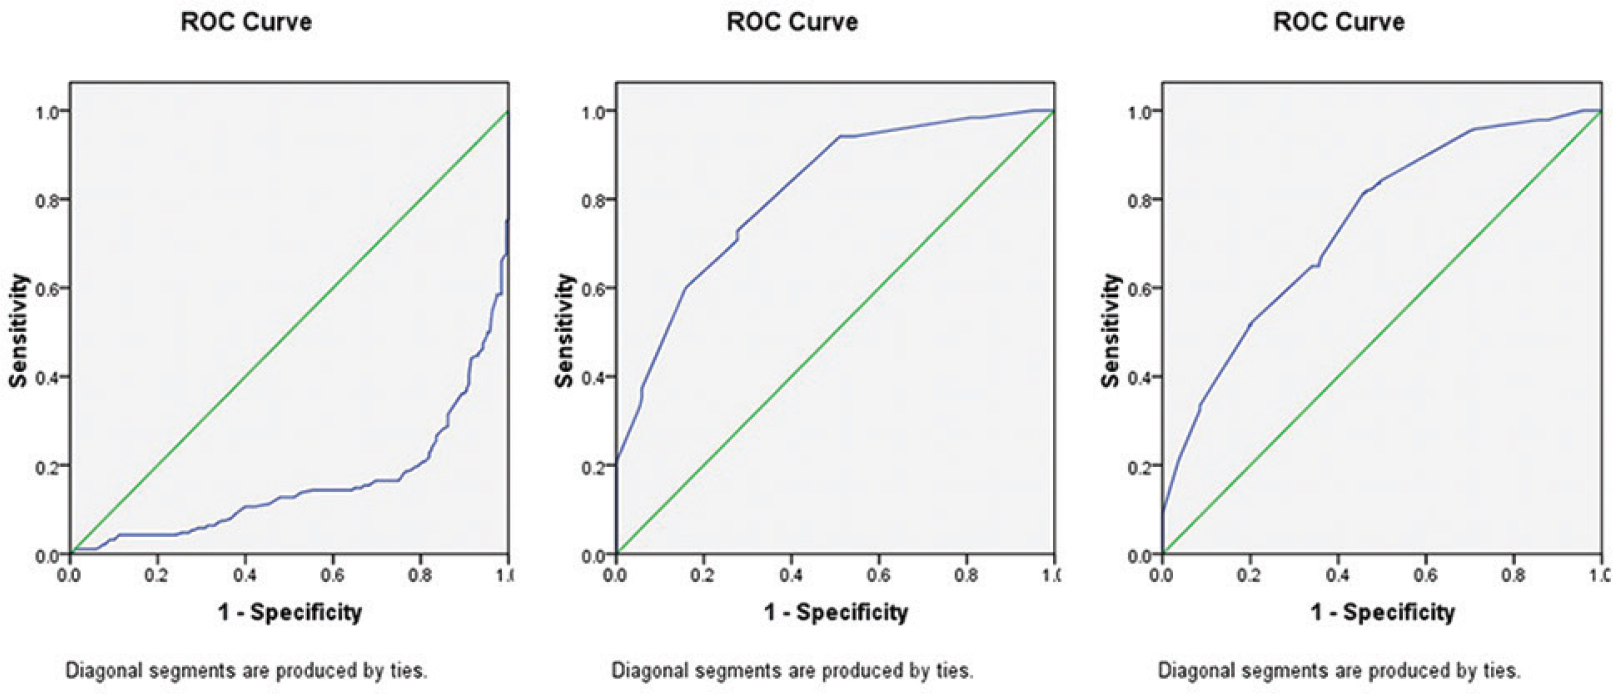 Figure 1: ROC Curves for Correlation of Platelet Indices- Platelet Count, MPV, PDW with Gold Standard, i.e., Blood Culture.